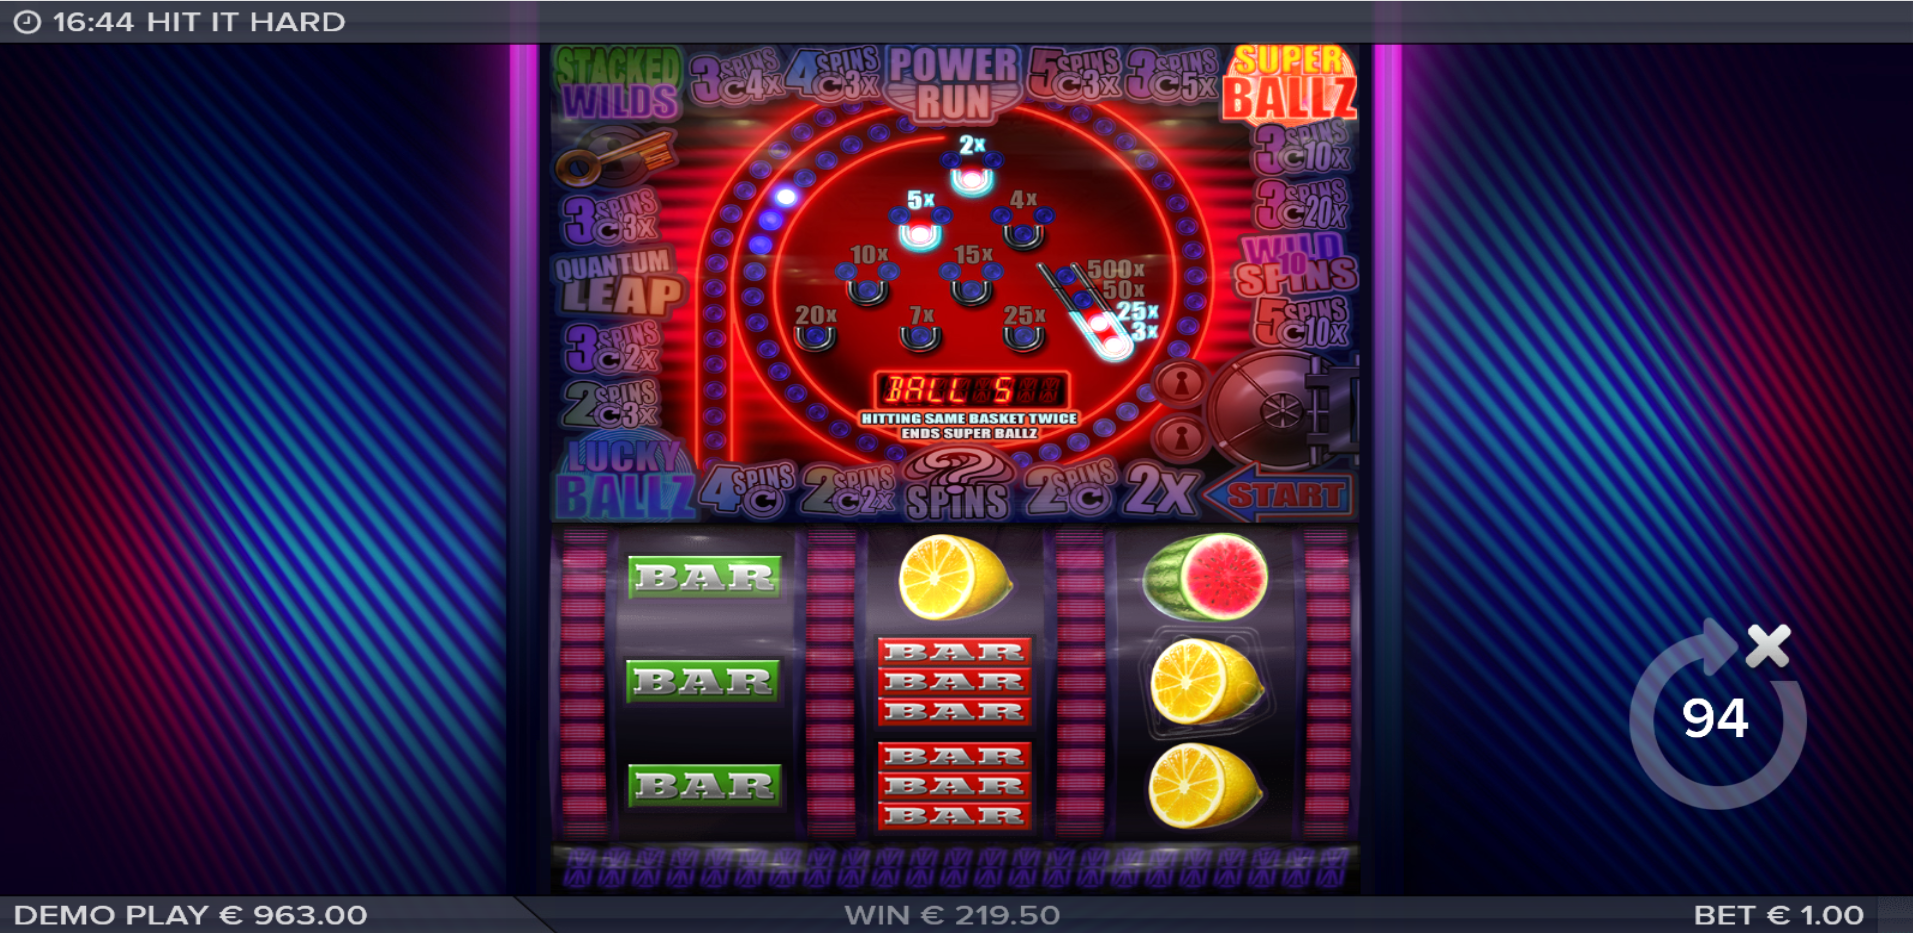 slot-Hit_it_Hard-slot-superballz